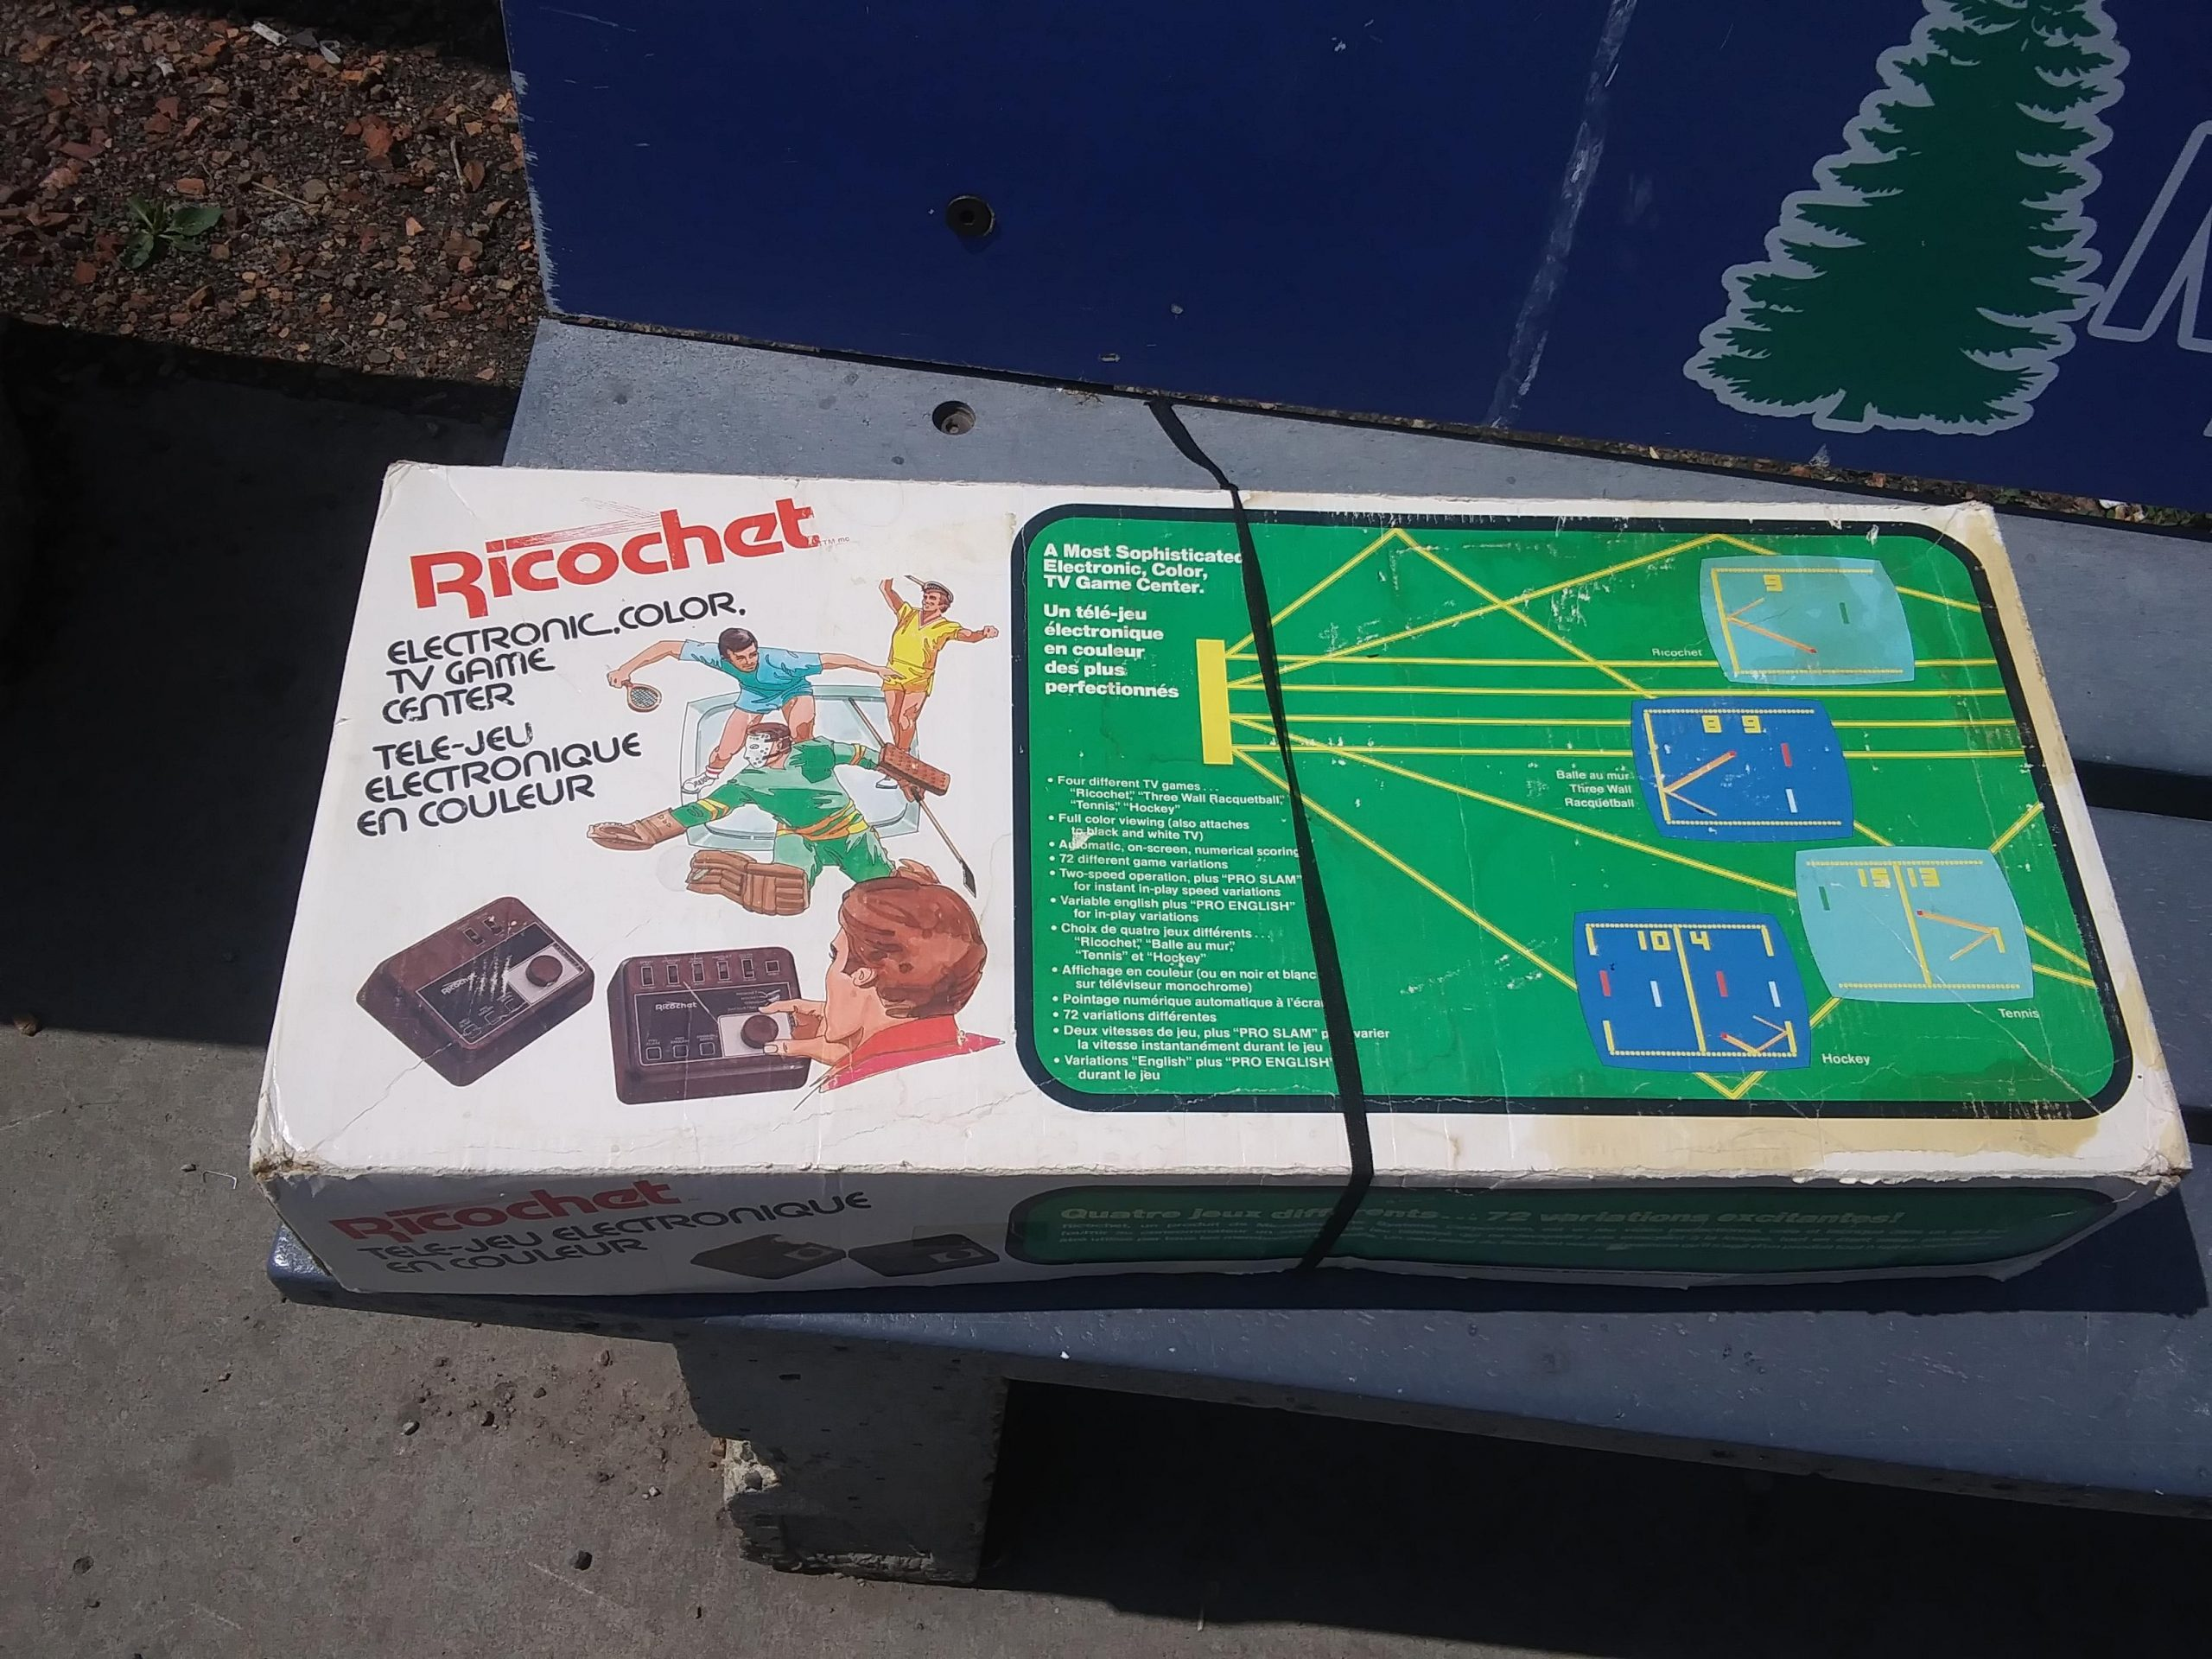 Does Anyone Know About The Ricochet Electronic,color,tv Game tout Ricochet Jeu